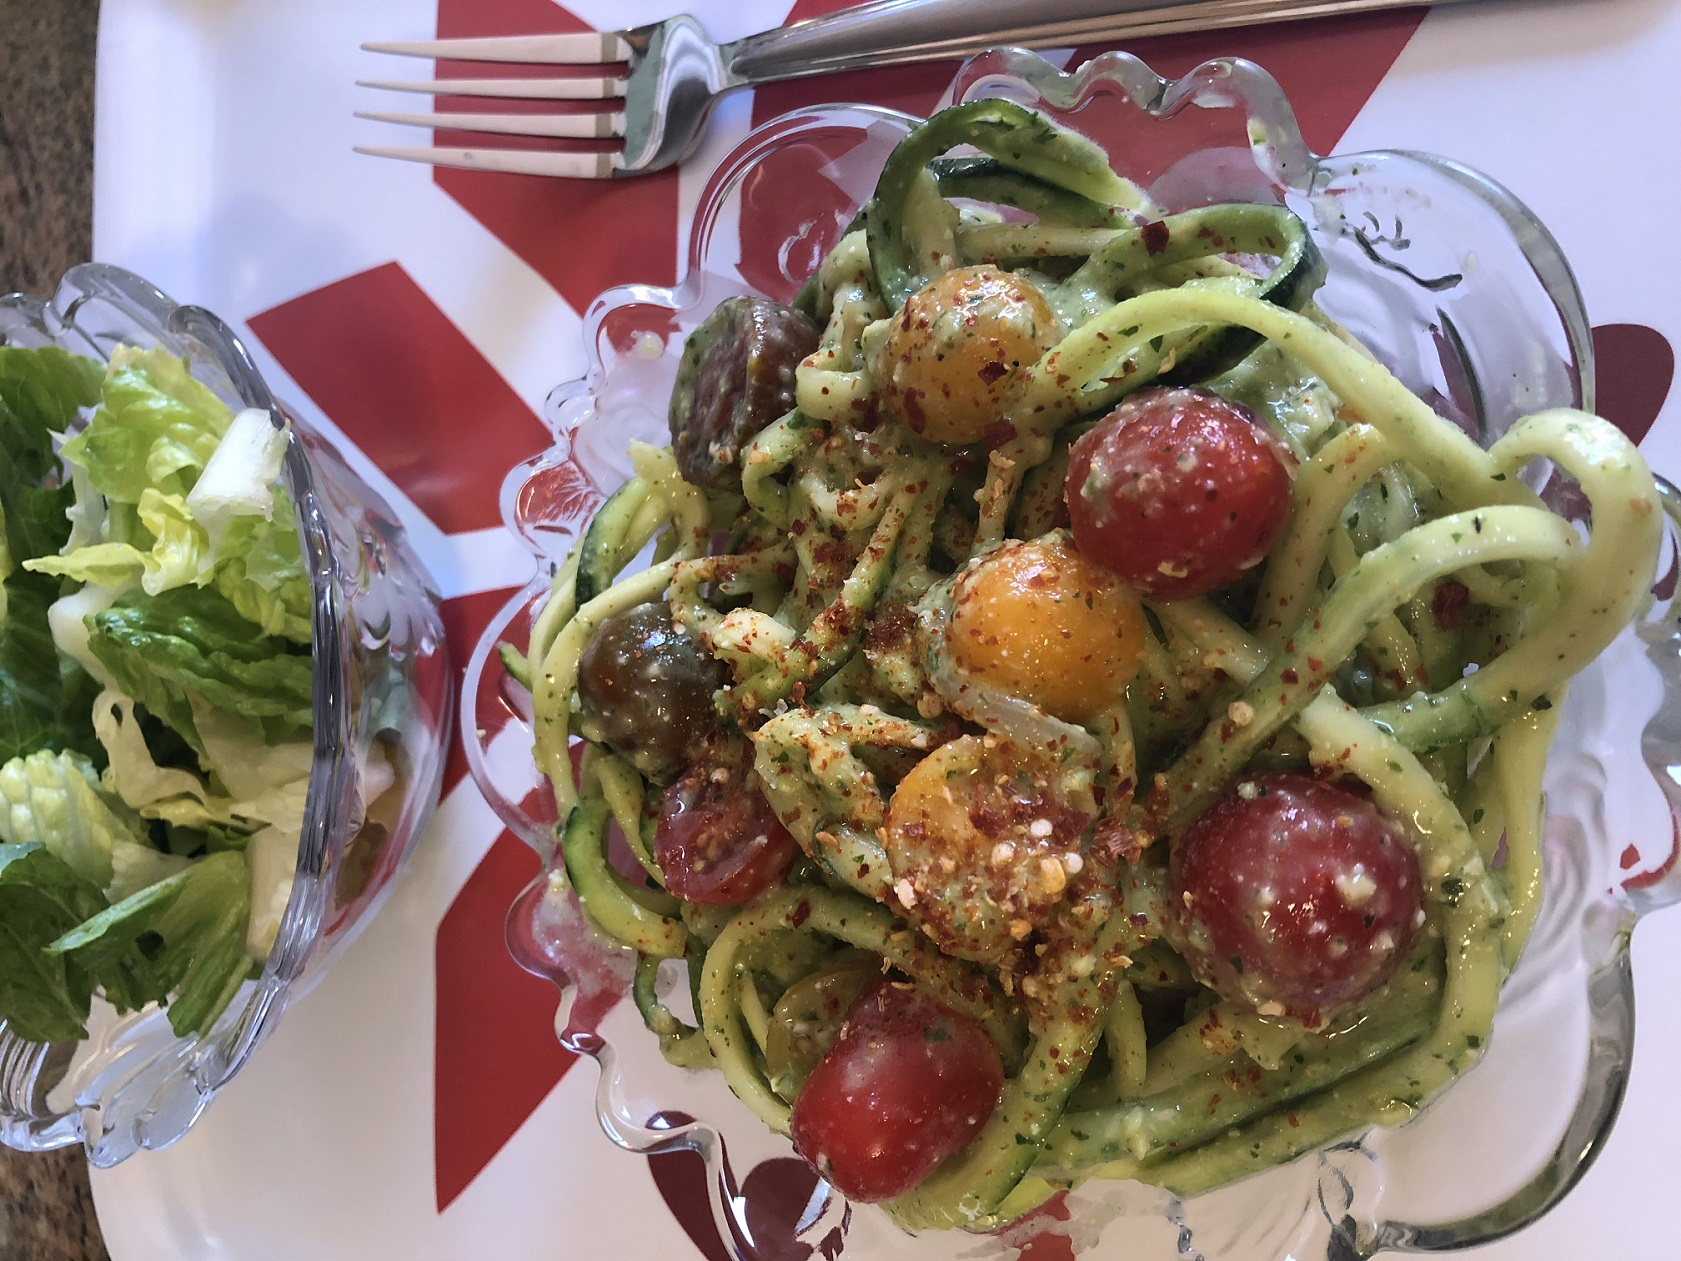 Zoodles for dinner?